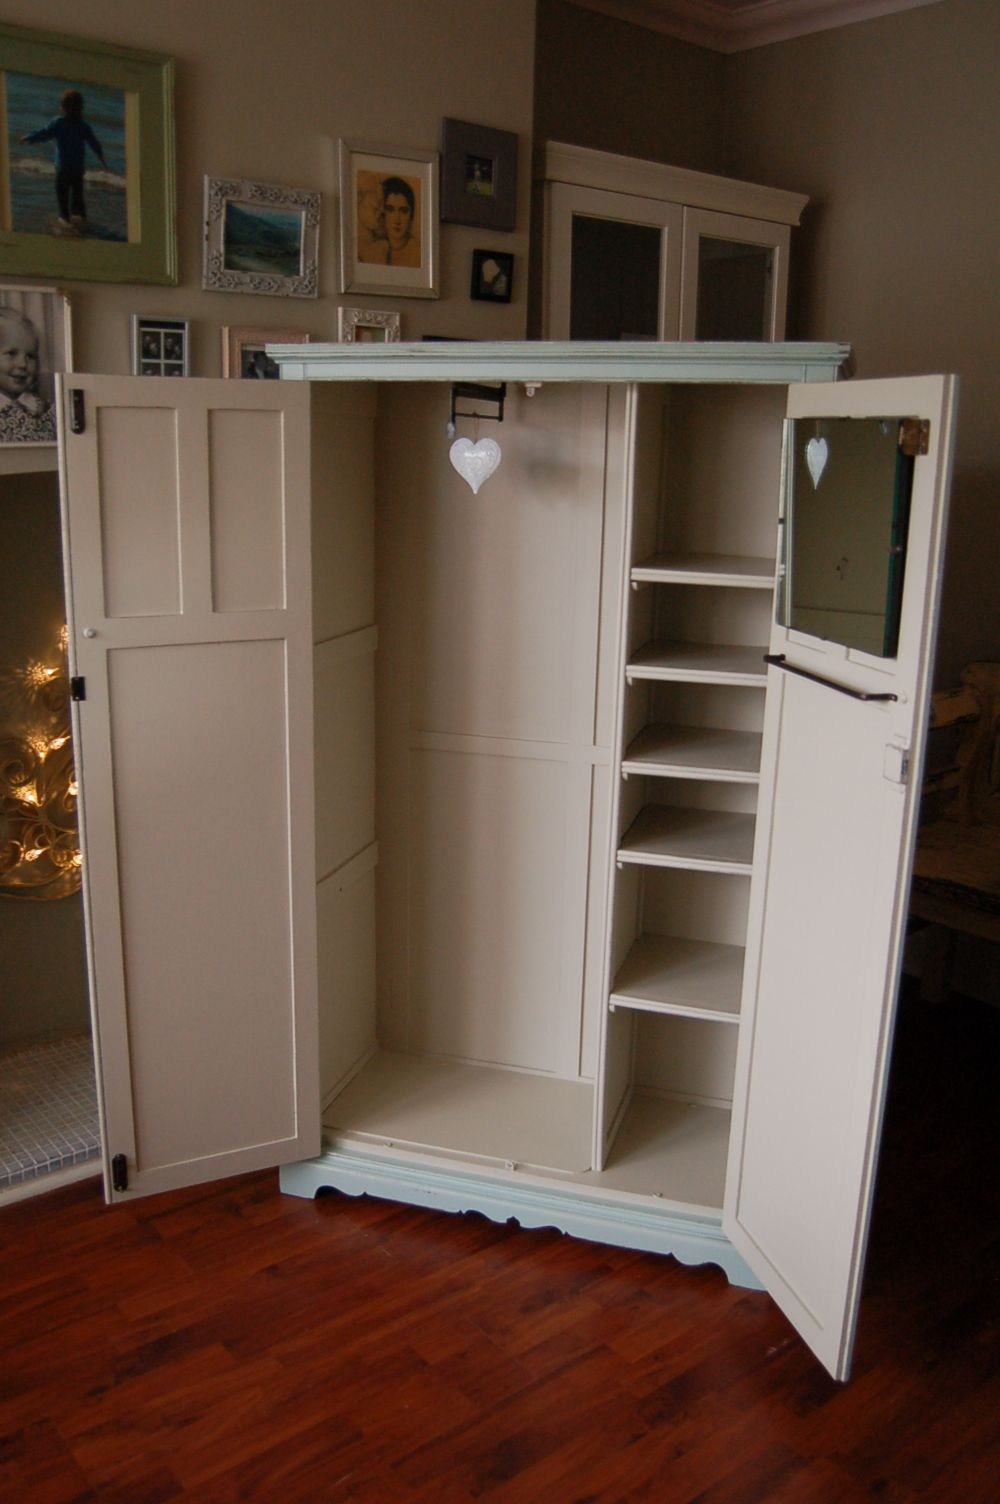 Room Vintage wardrobe Interior Hand painted and